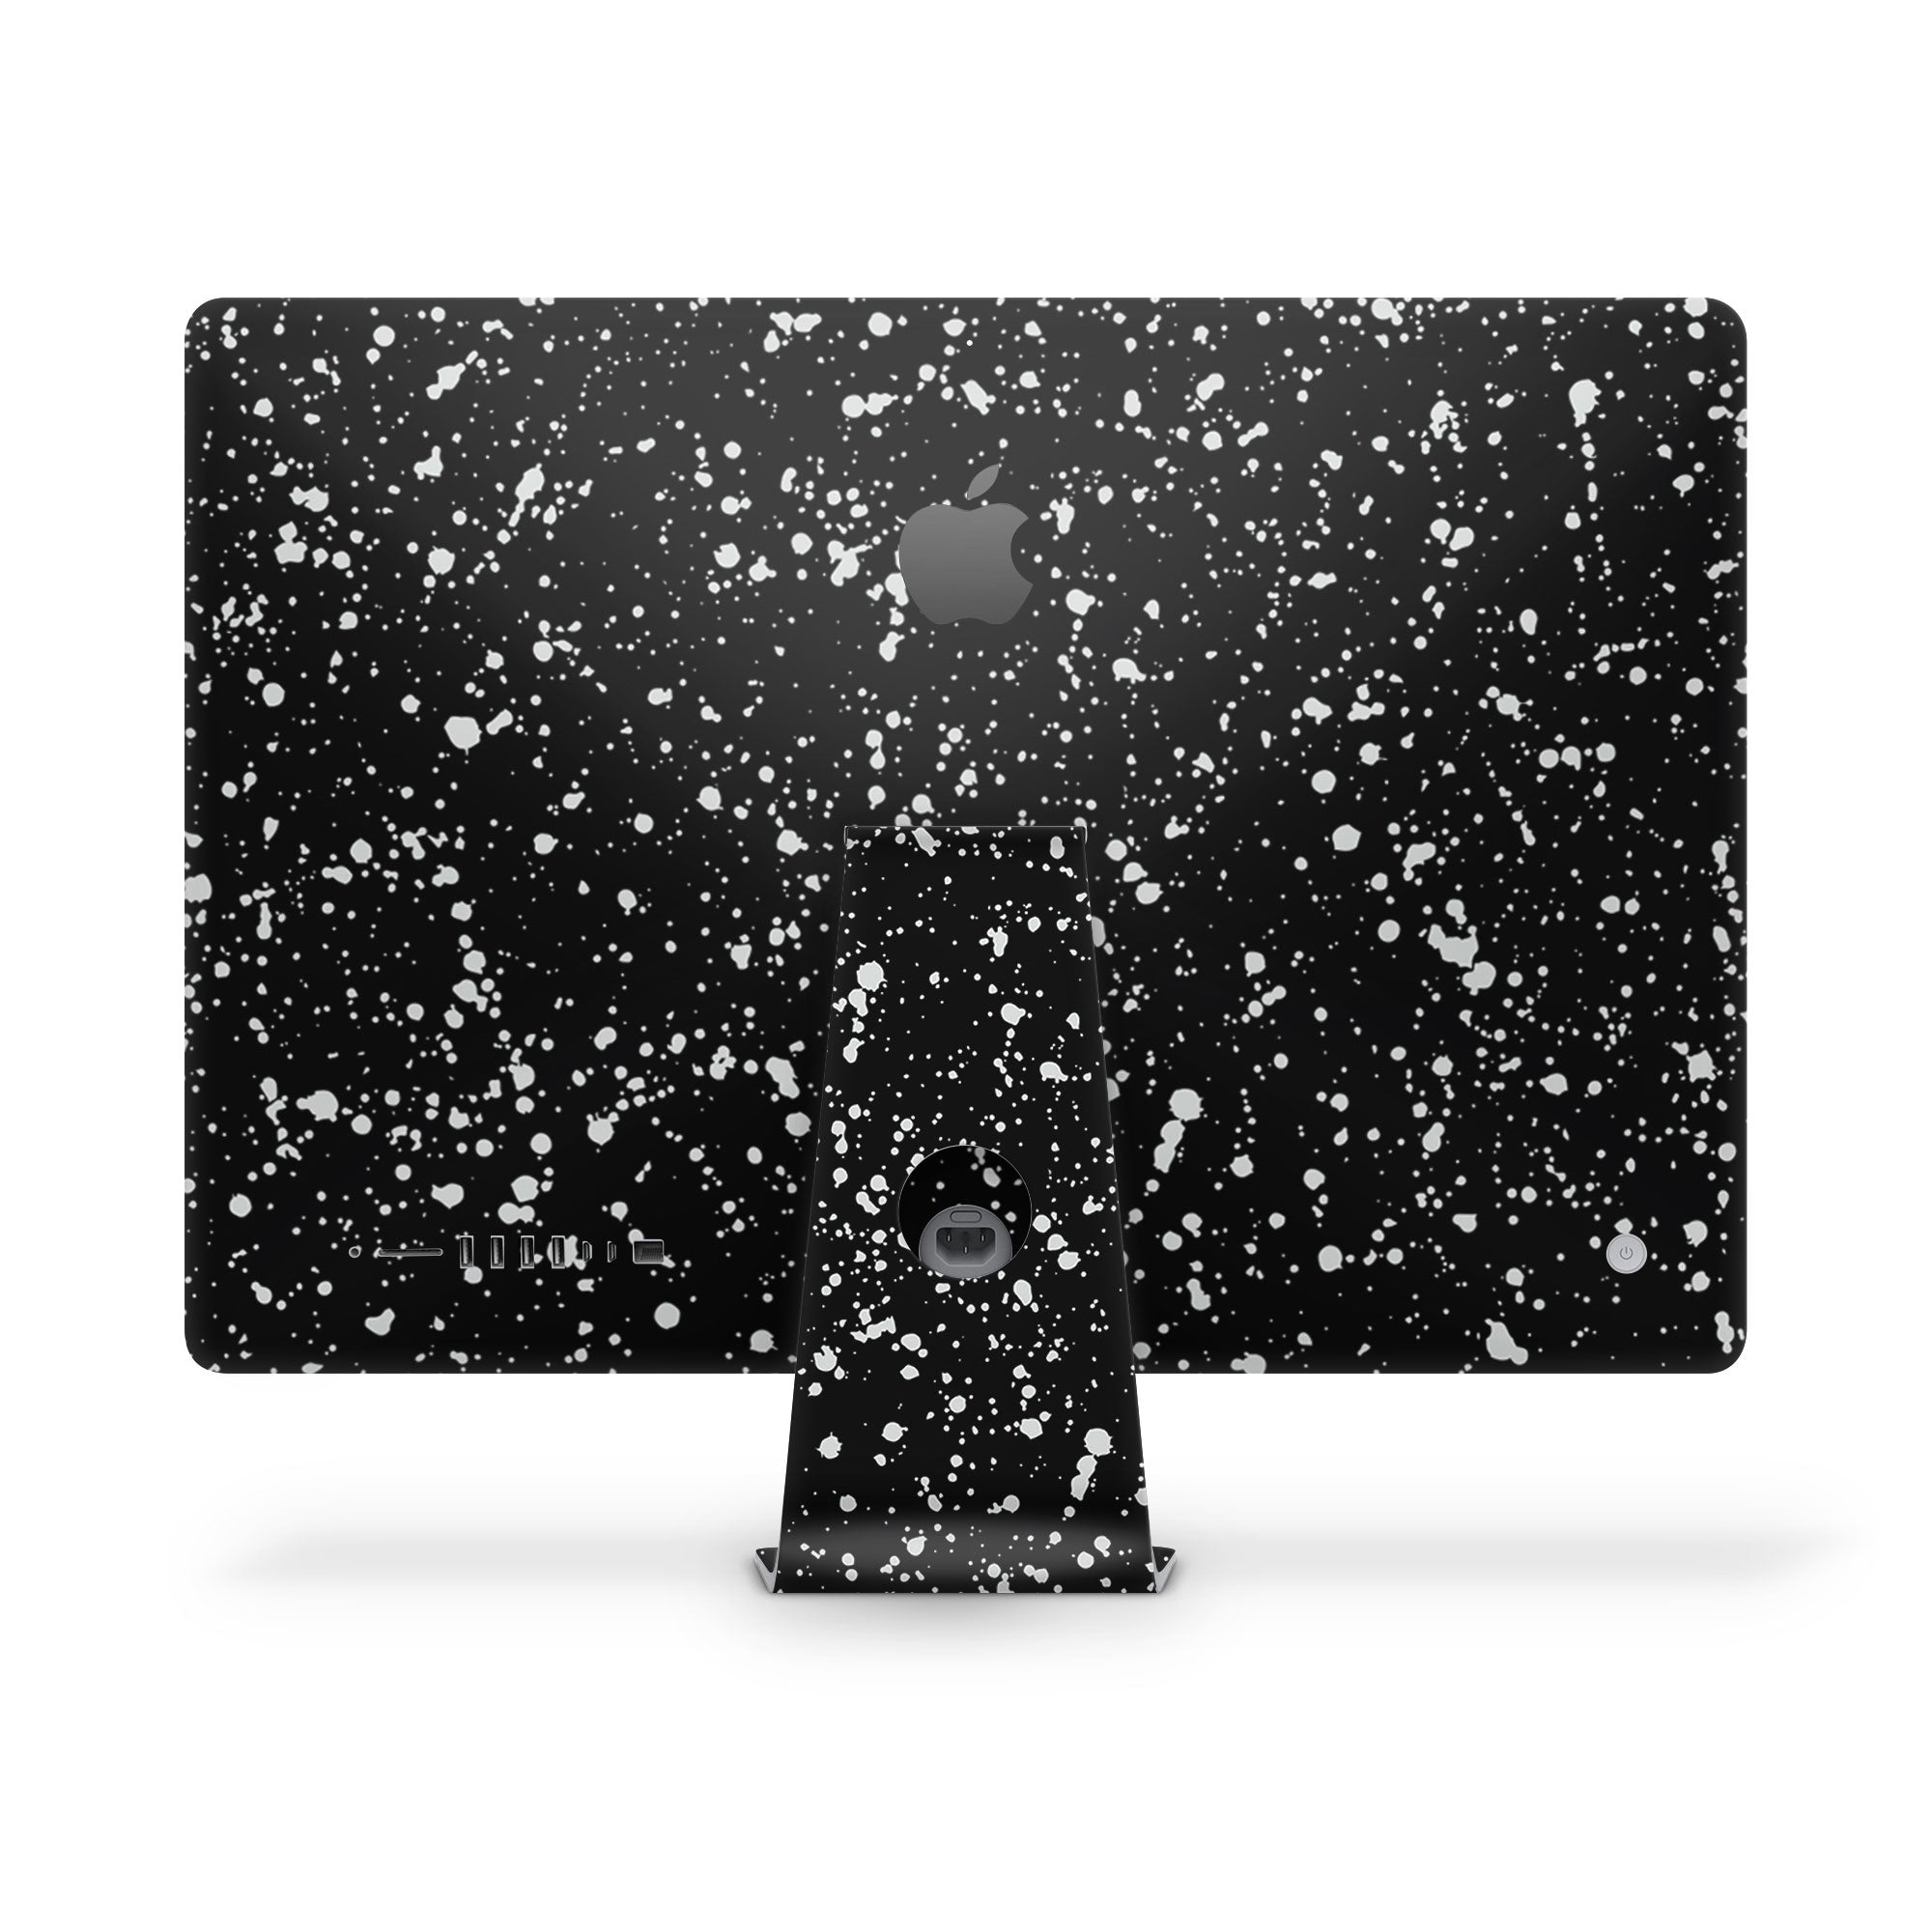 iMac Decal Black Speckle